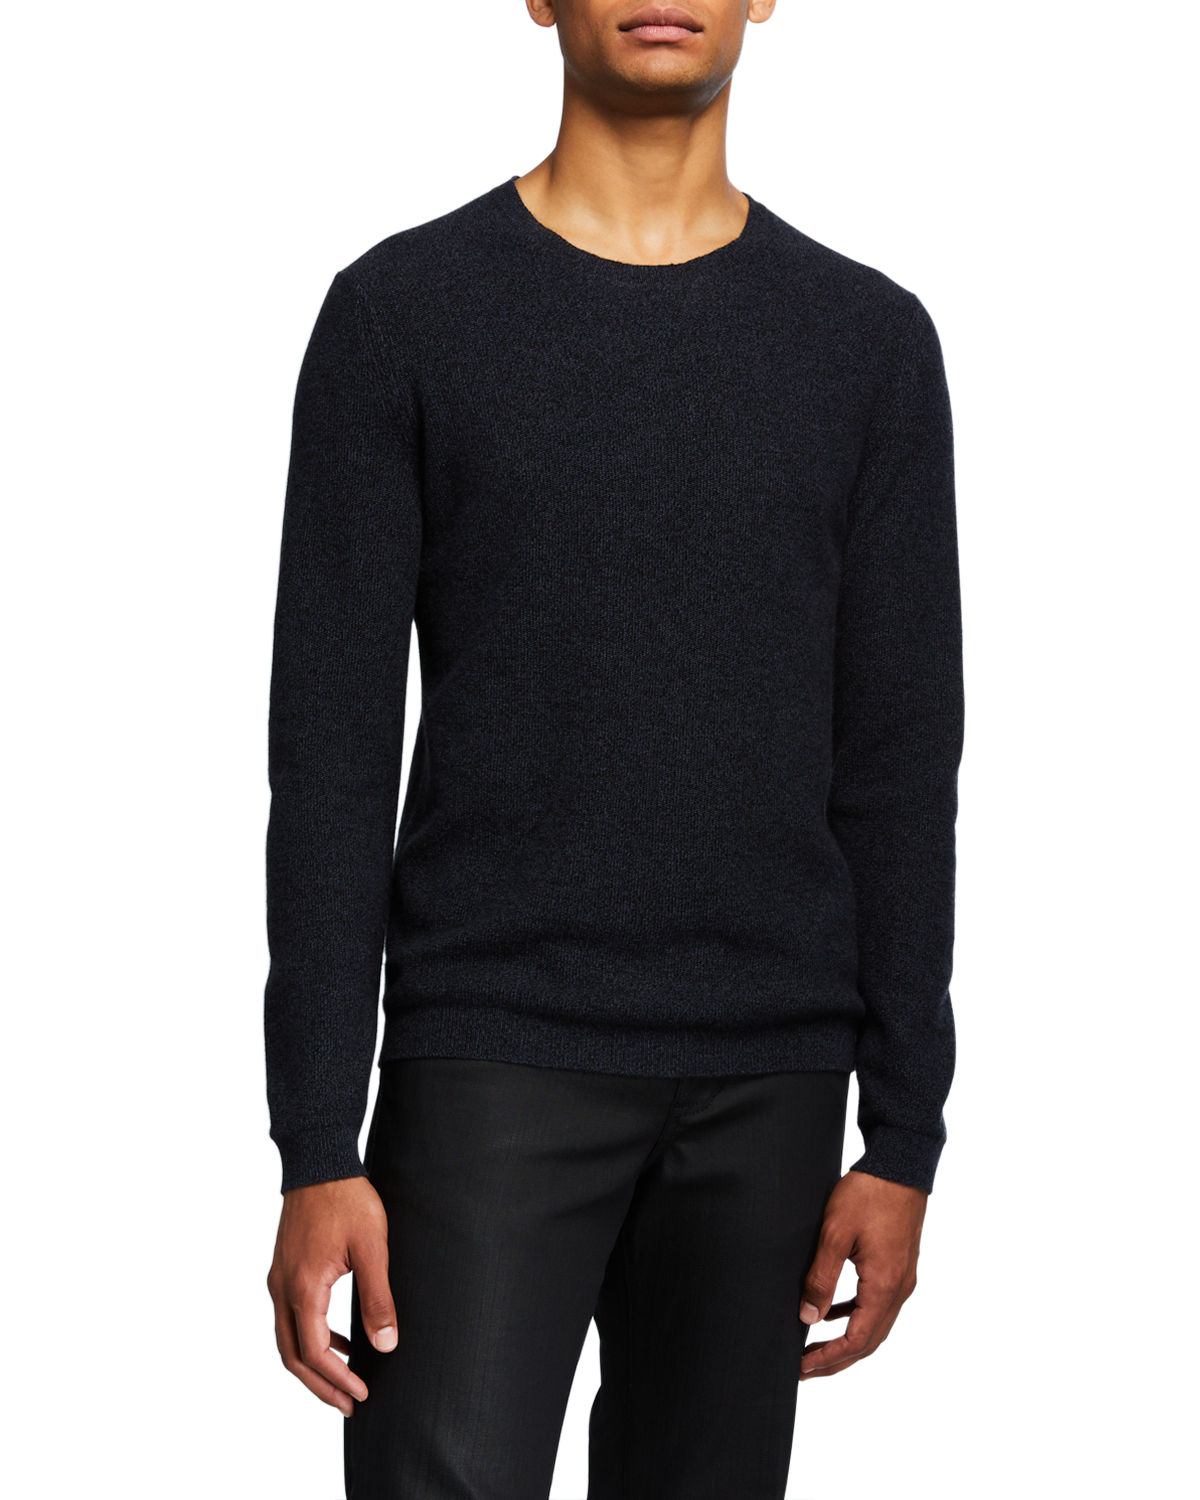 Theory Sweaters MEN'S MEDIN SOLID CASHMERE CREWNECK SWEATER